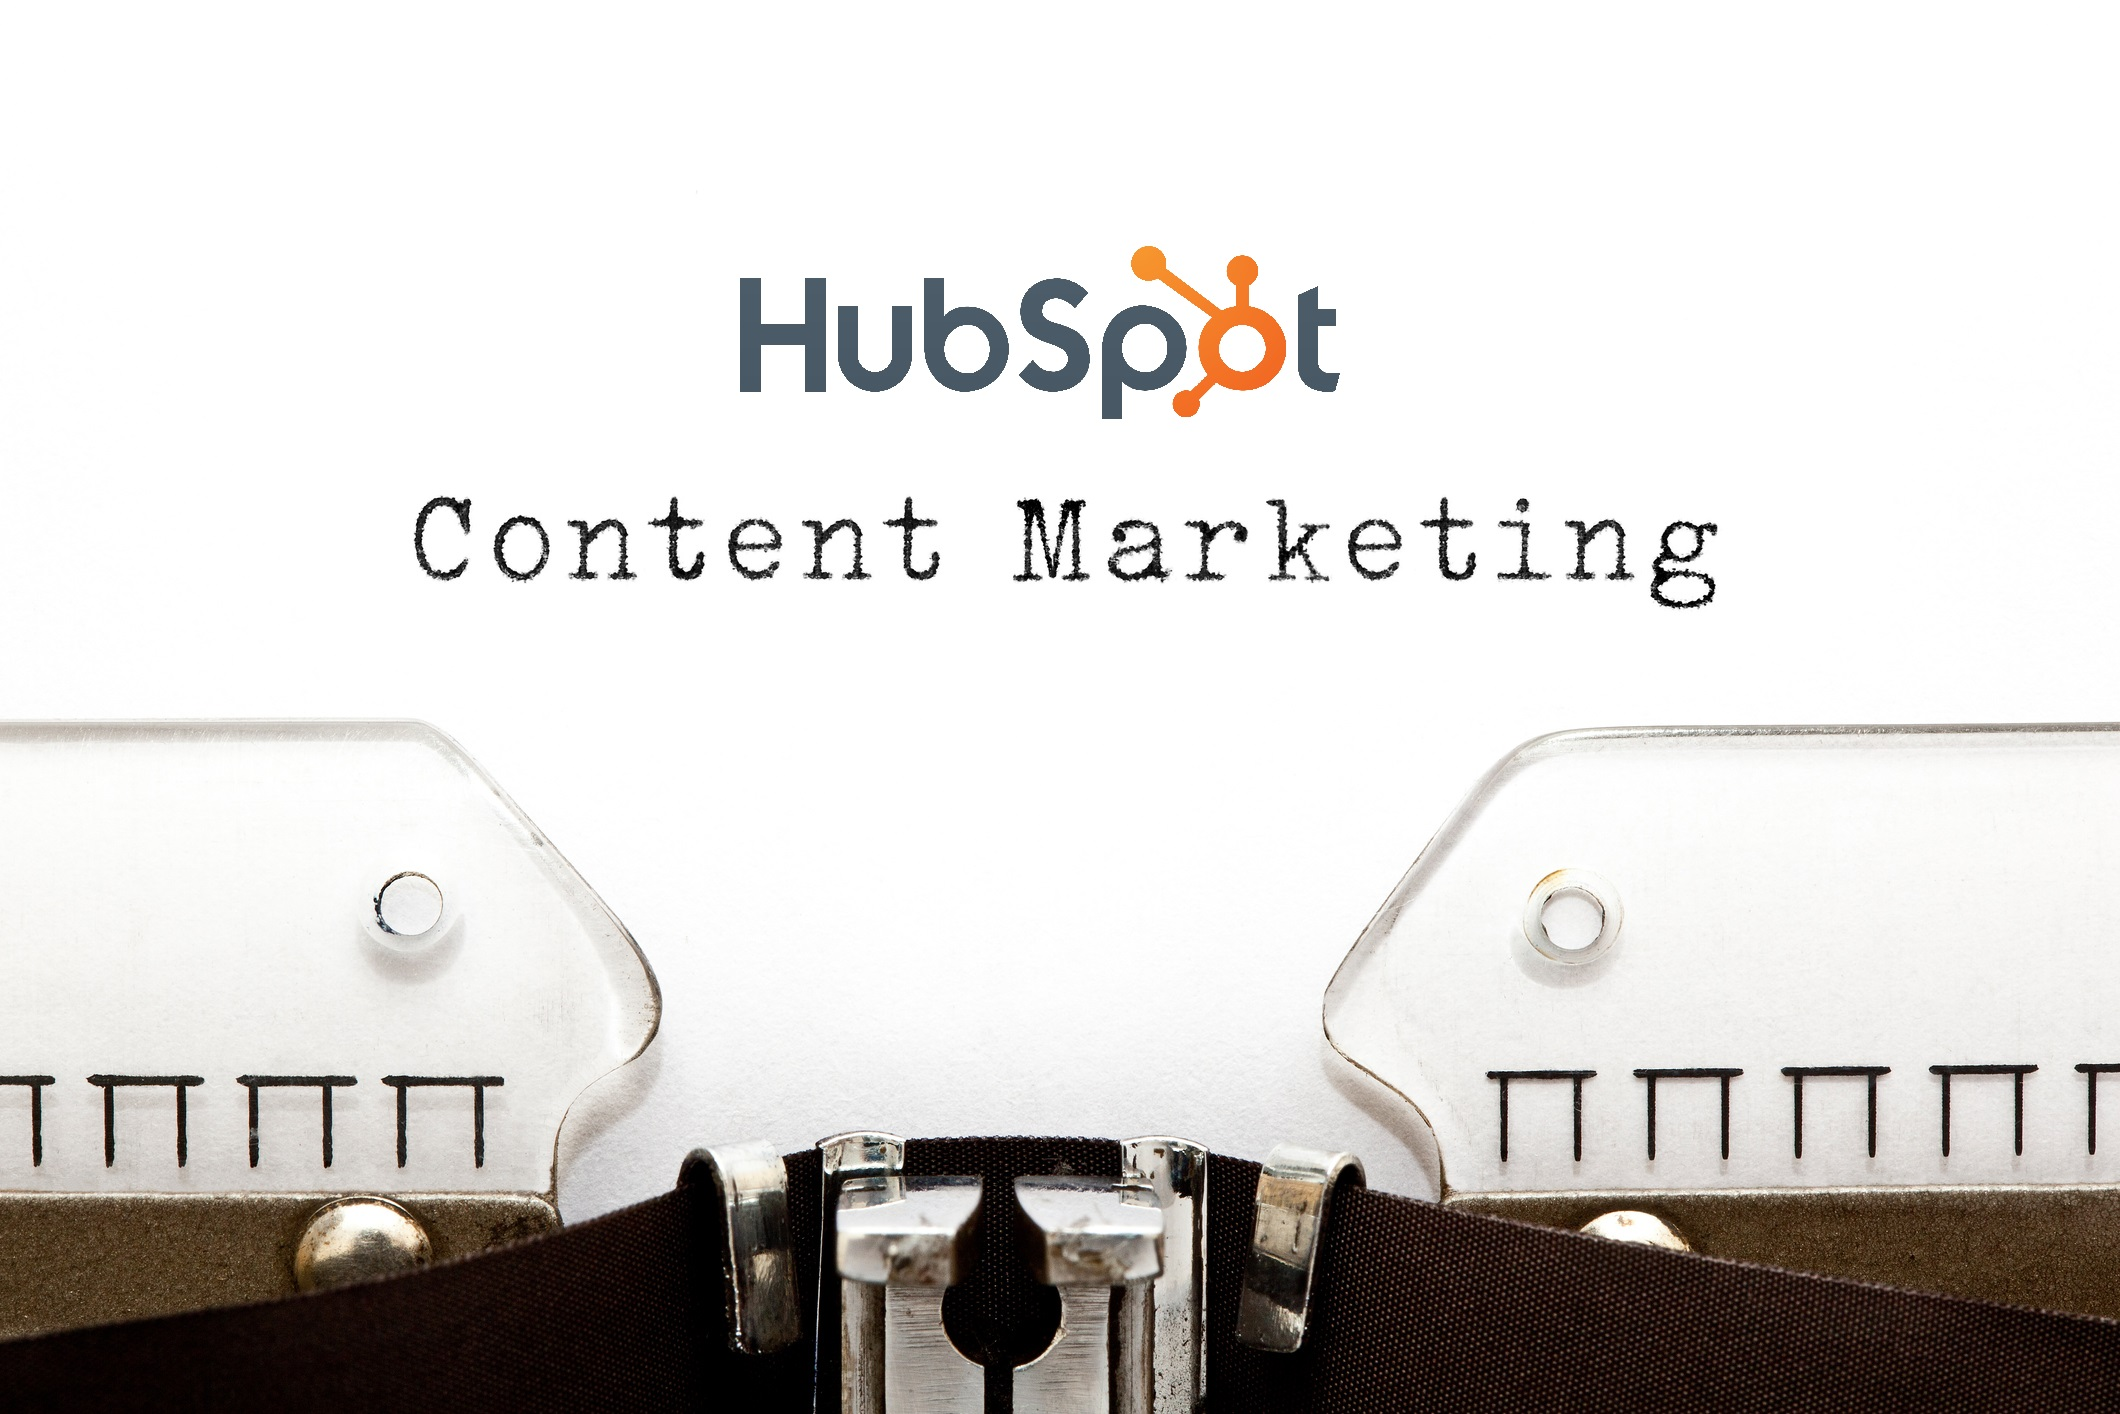 4 Key Things to Consider Before Starting HubSpot Content Marketing